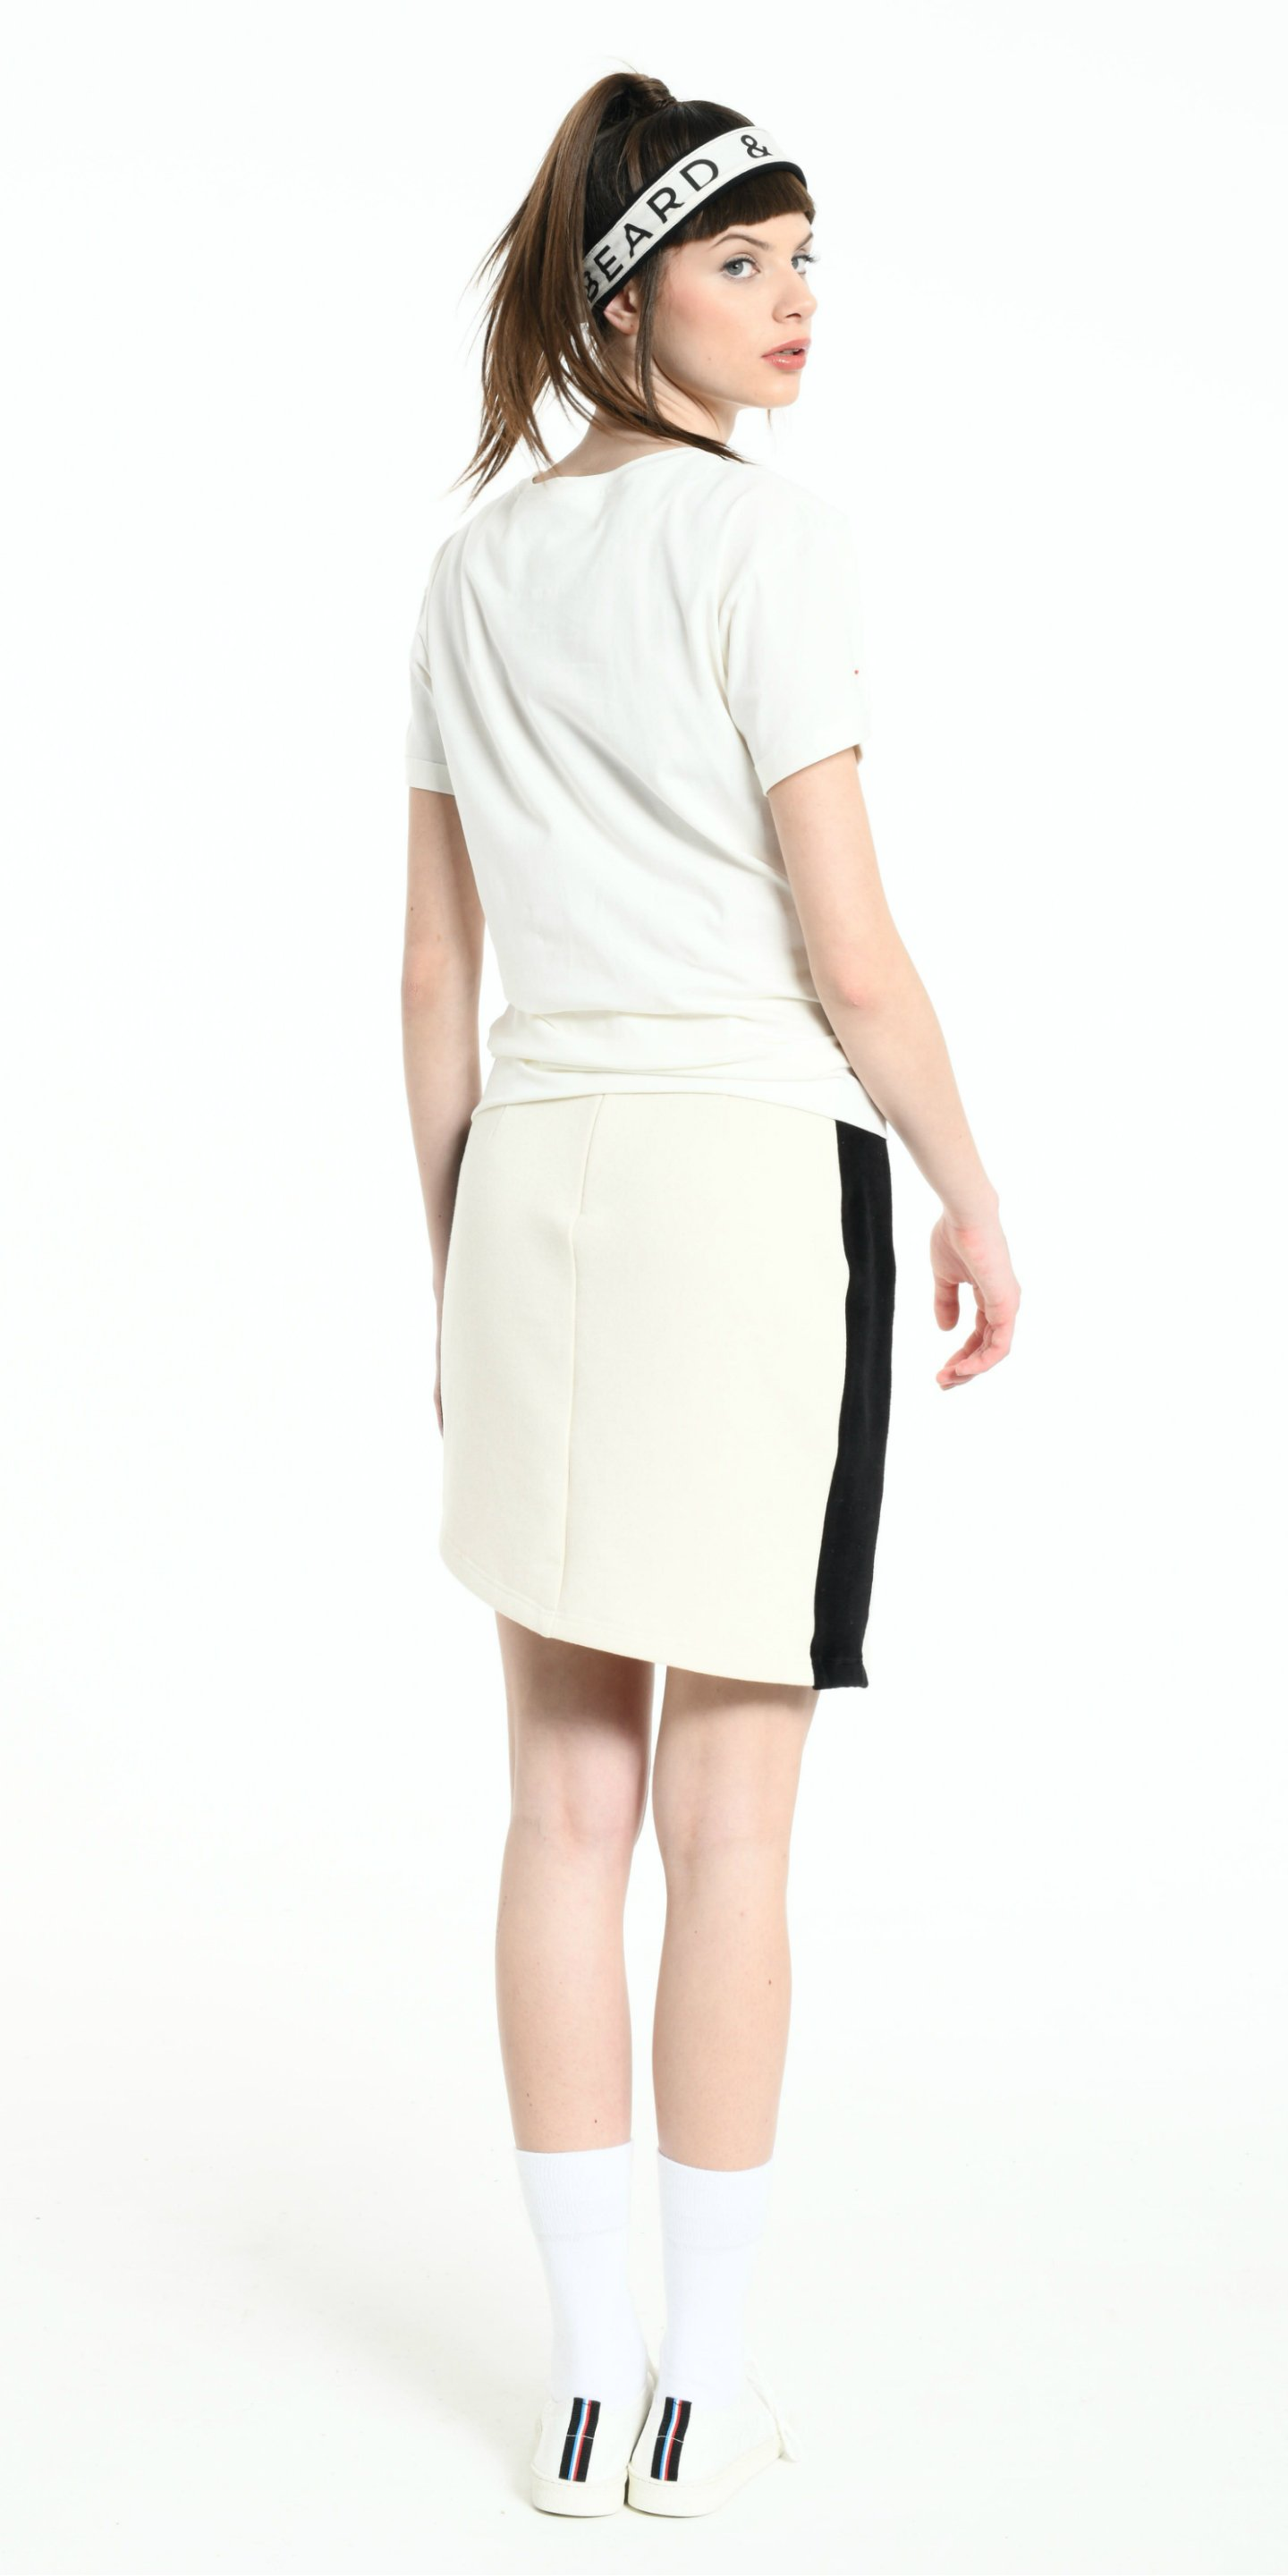 SKIRT OFF WHITE WITH BLACK STRIP from BEARD & FRINGE